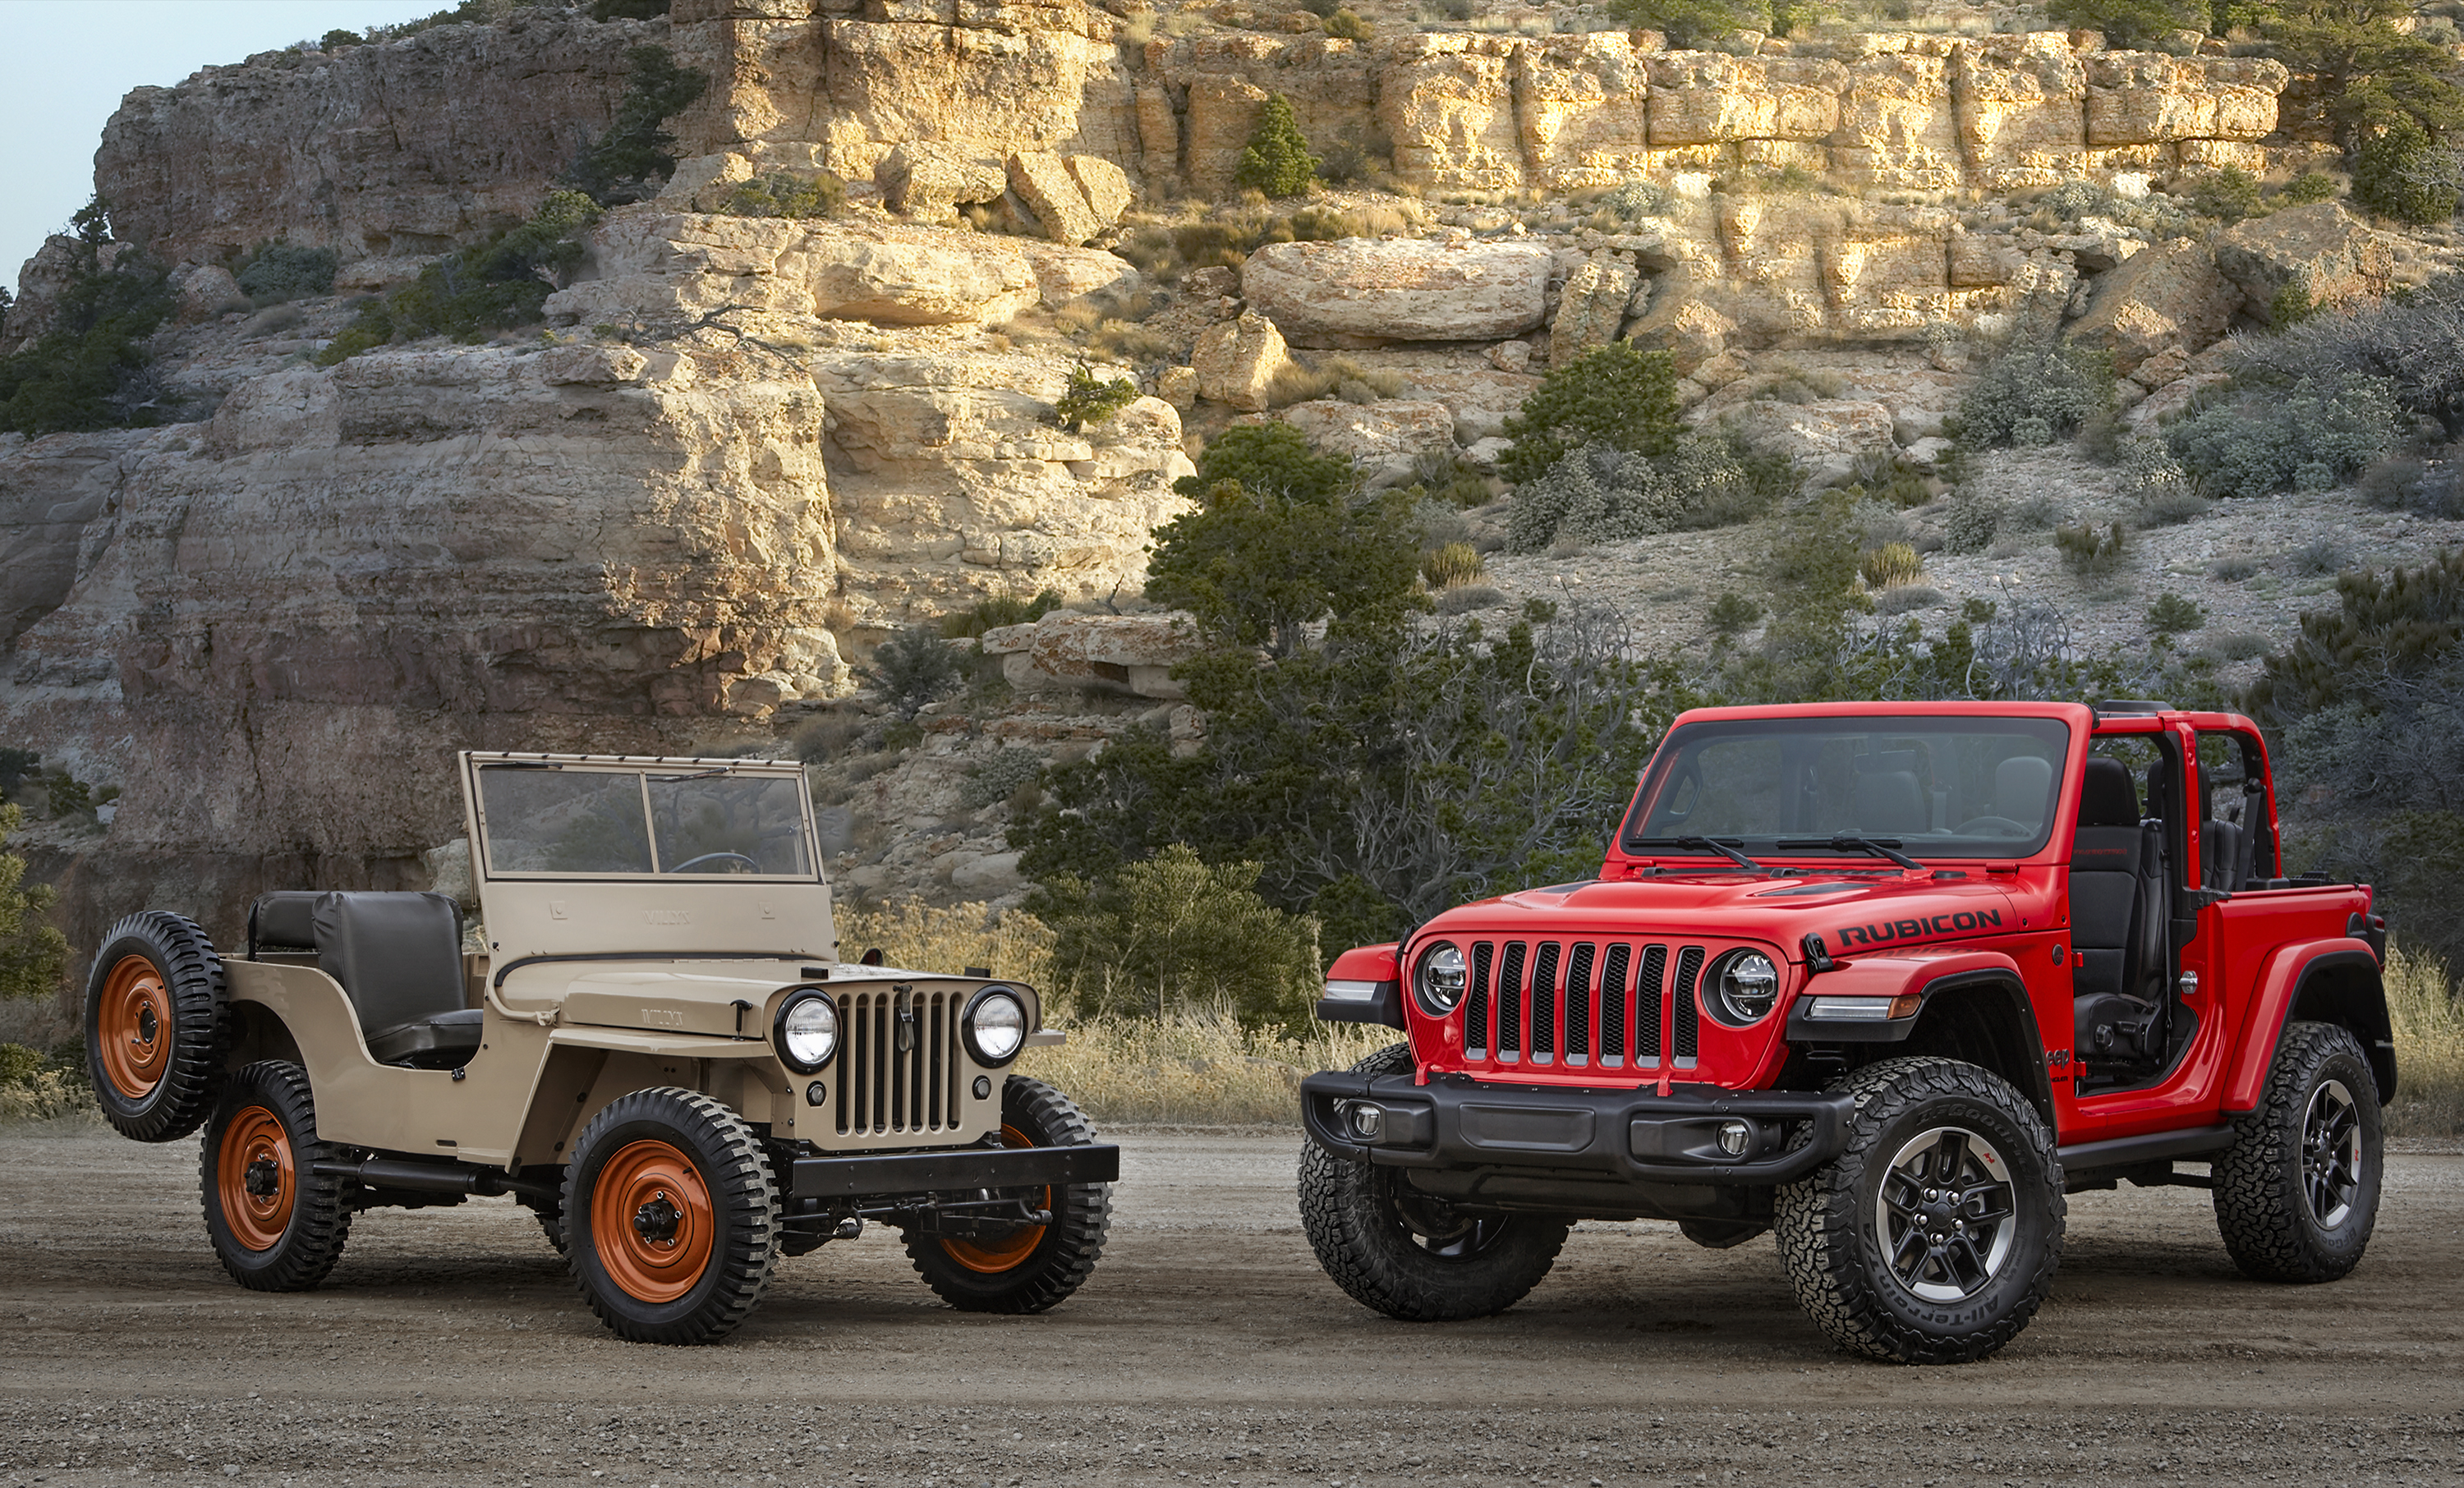 There will be a plug-in Hybrid Jeep Wrangler in 2020